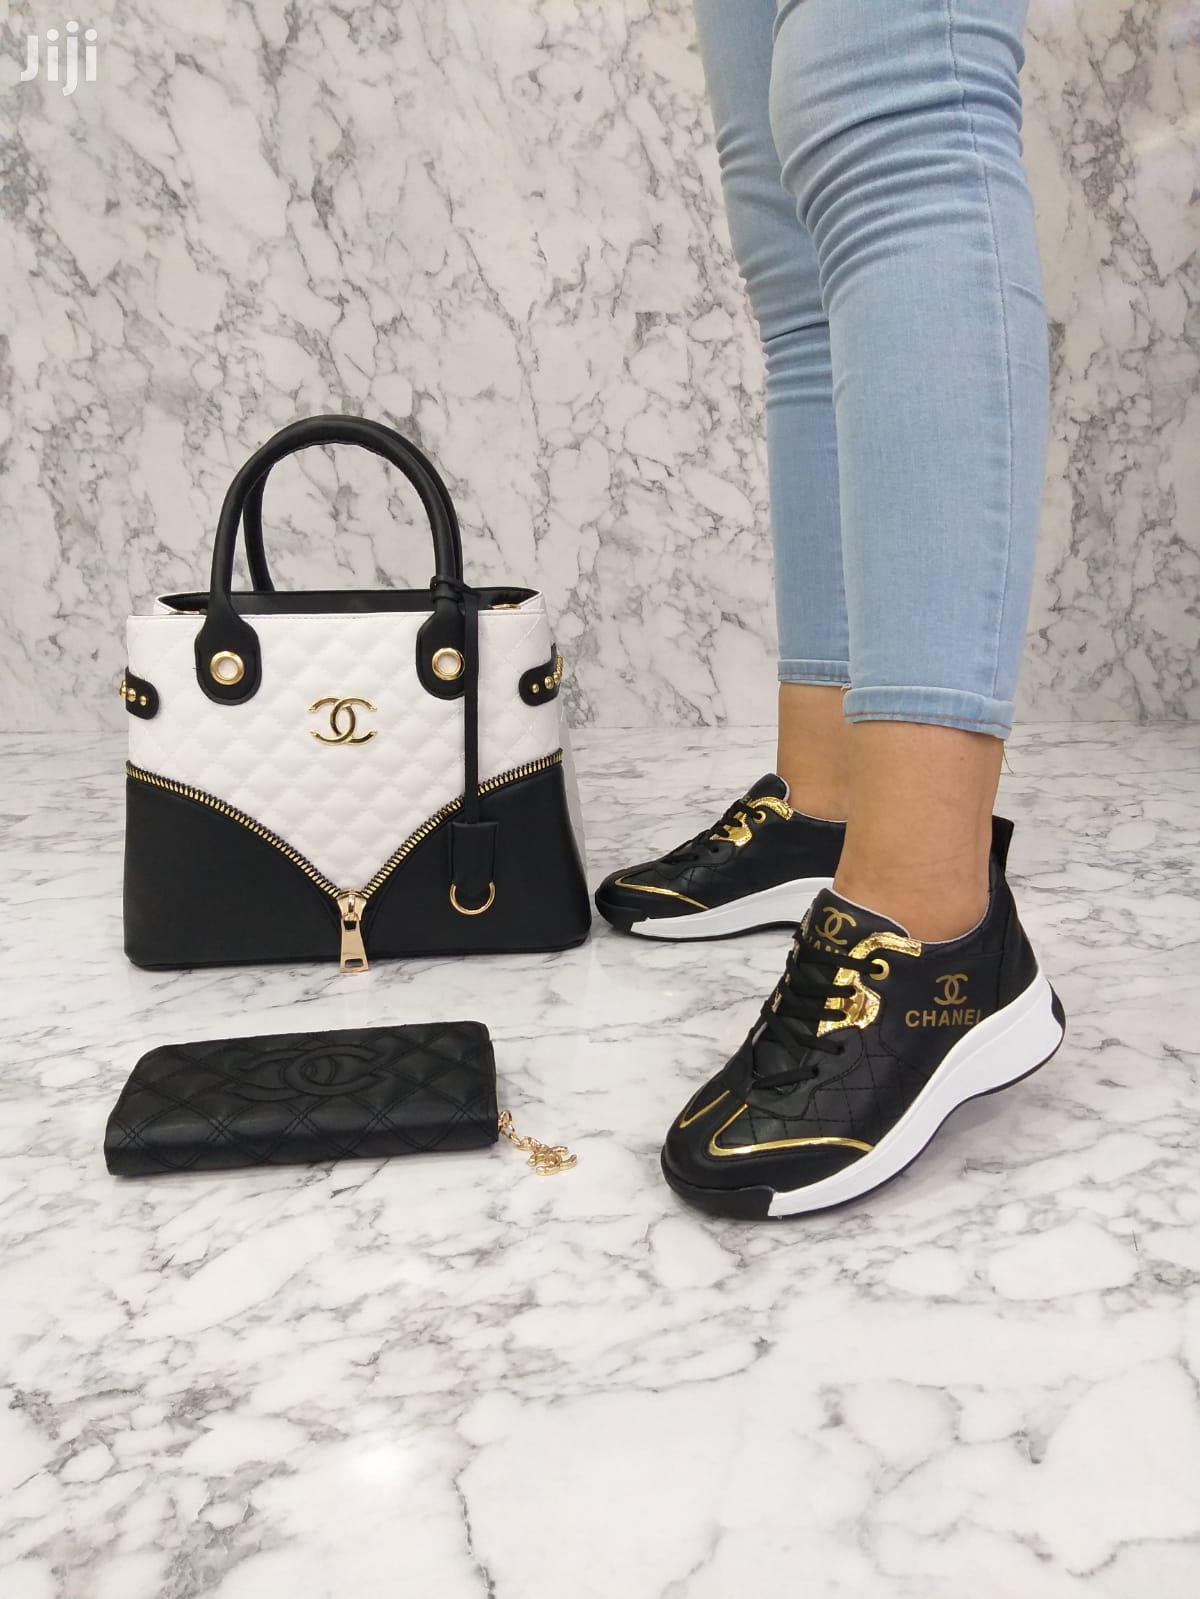 Archive: Classy Shoes And Bag For Ladies